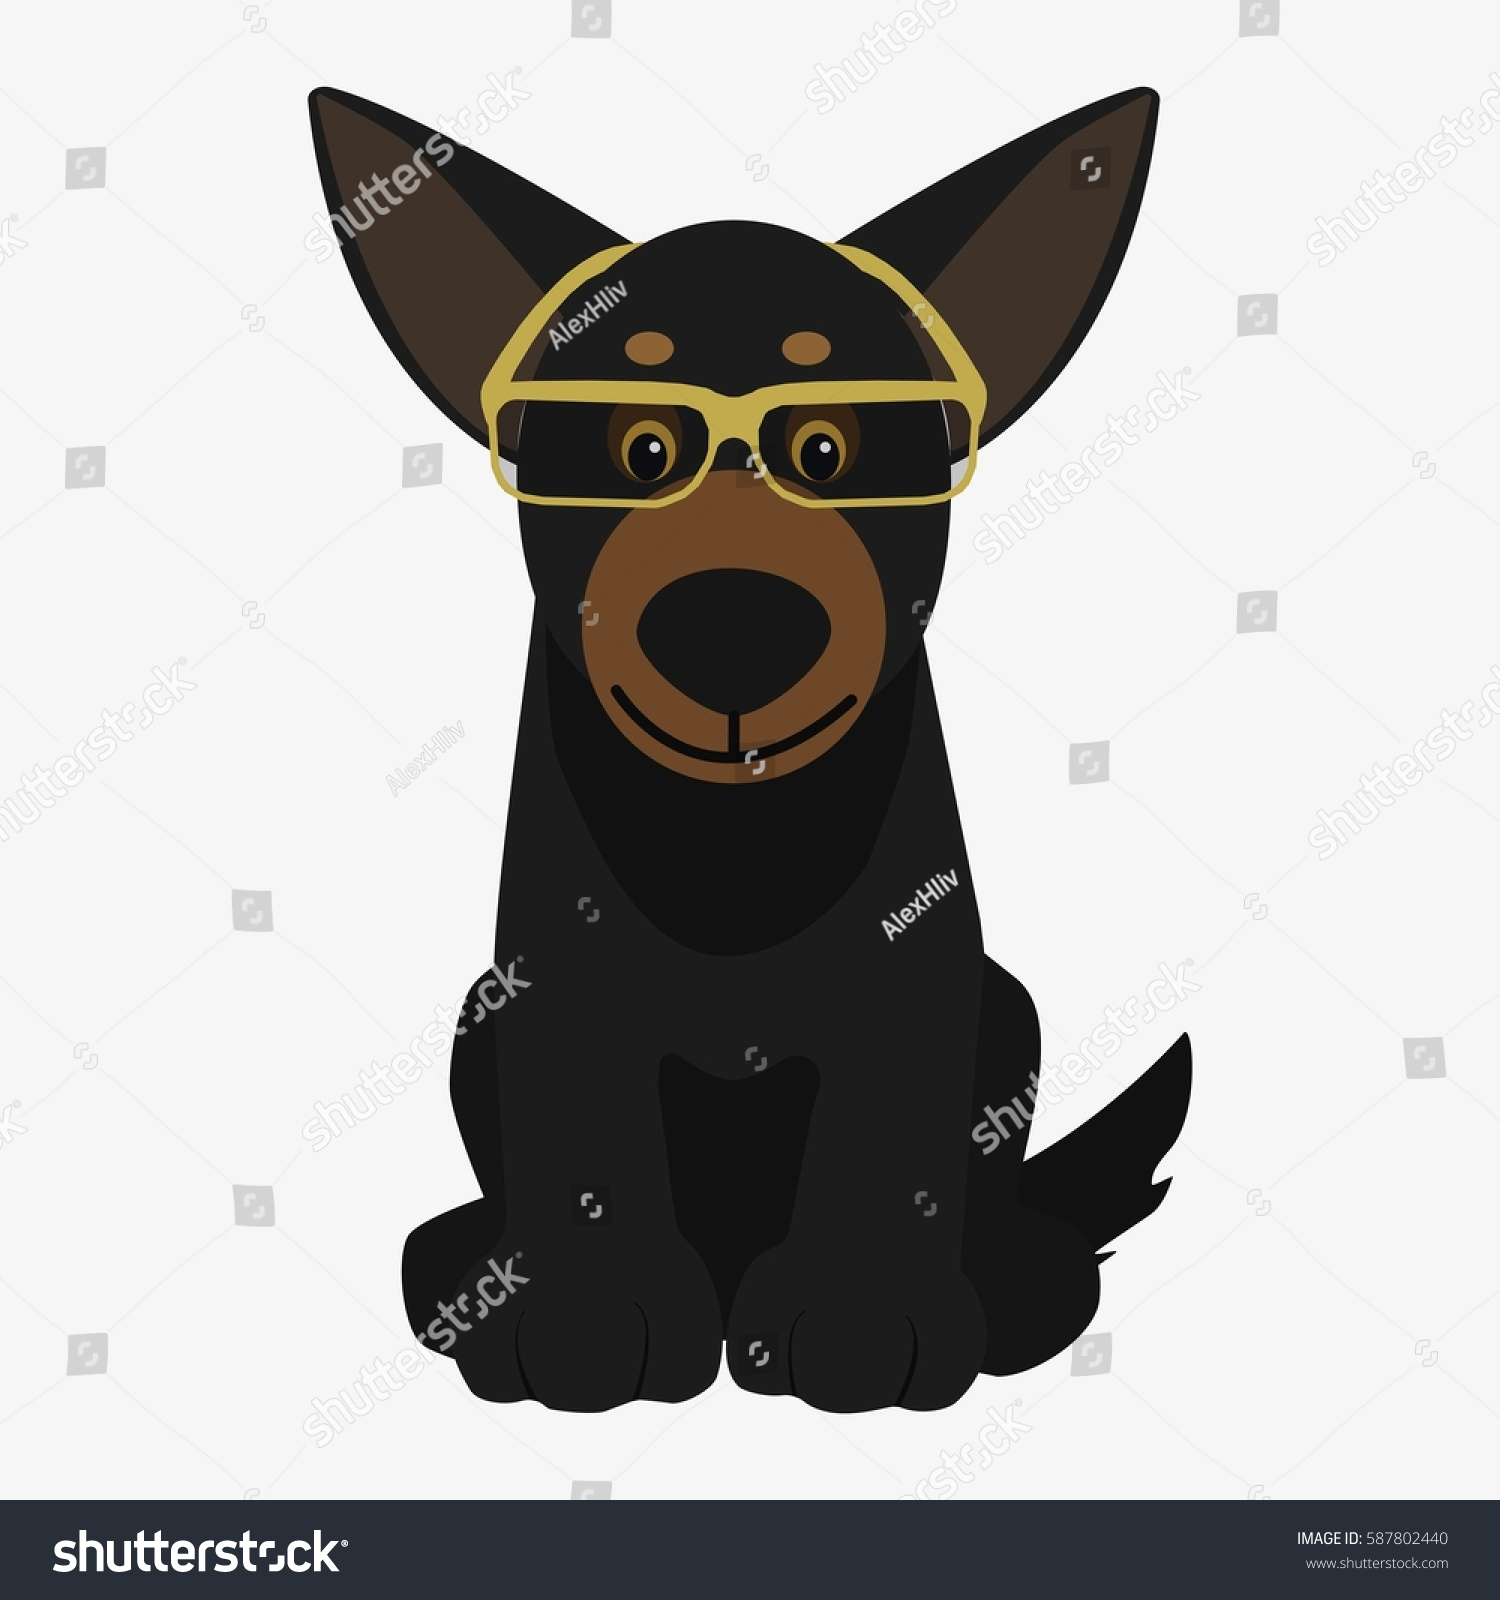 Cartoon Characters W Glasses : The gallery for gt black dog cartoon character